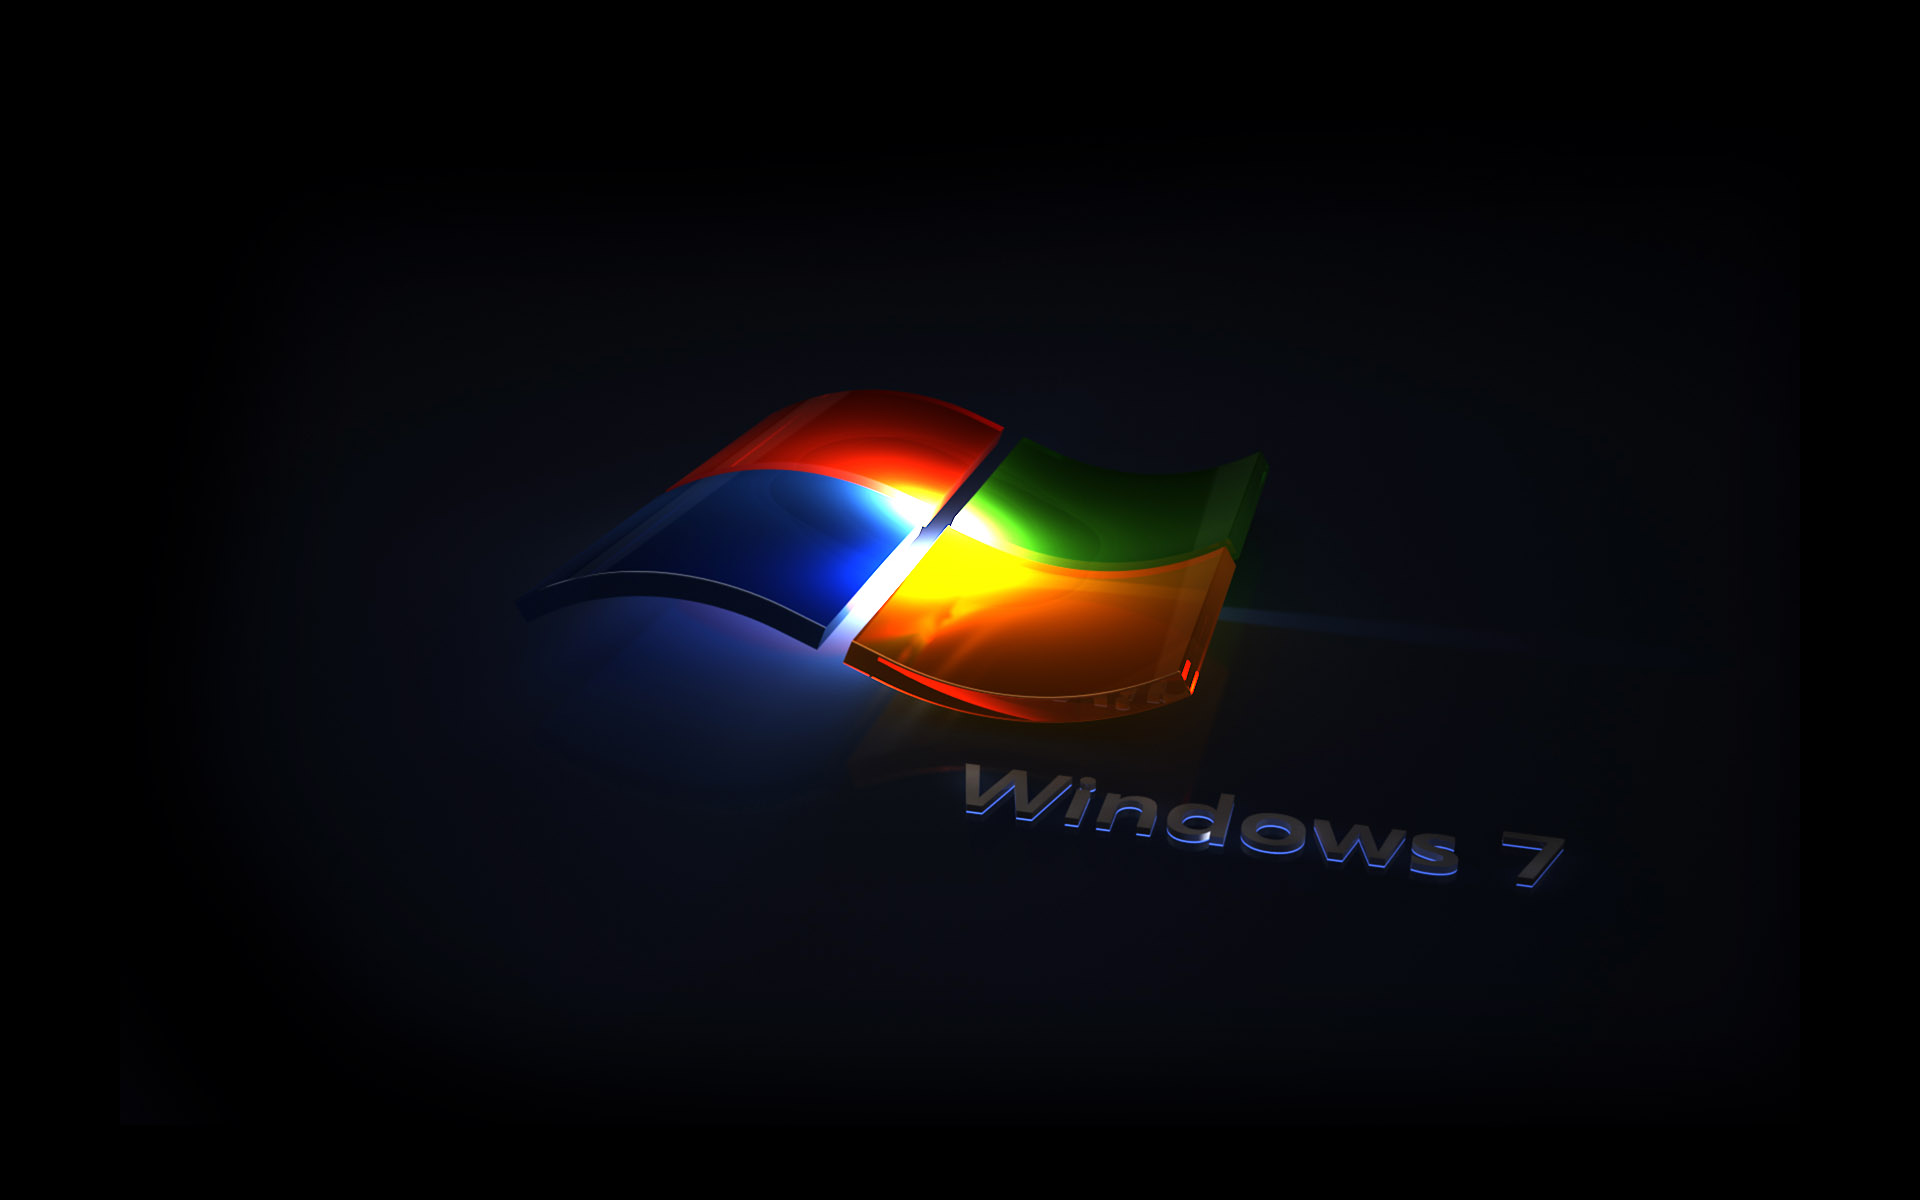 wallpapers windows 7 wallpapers windows 7